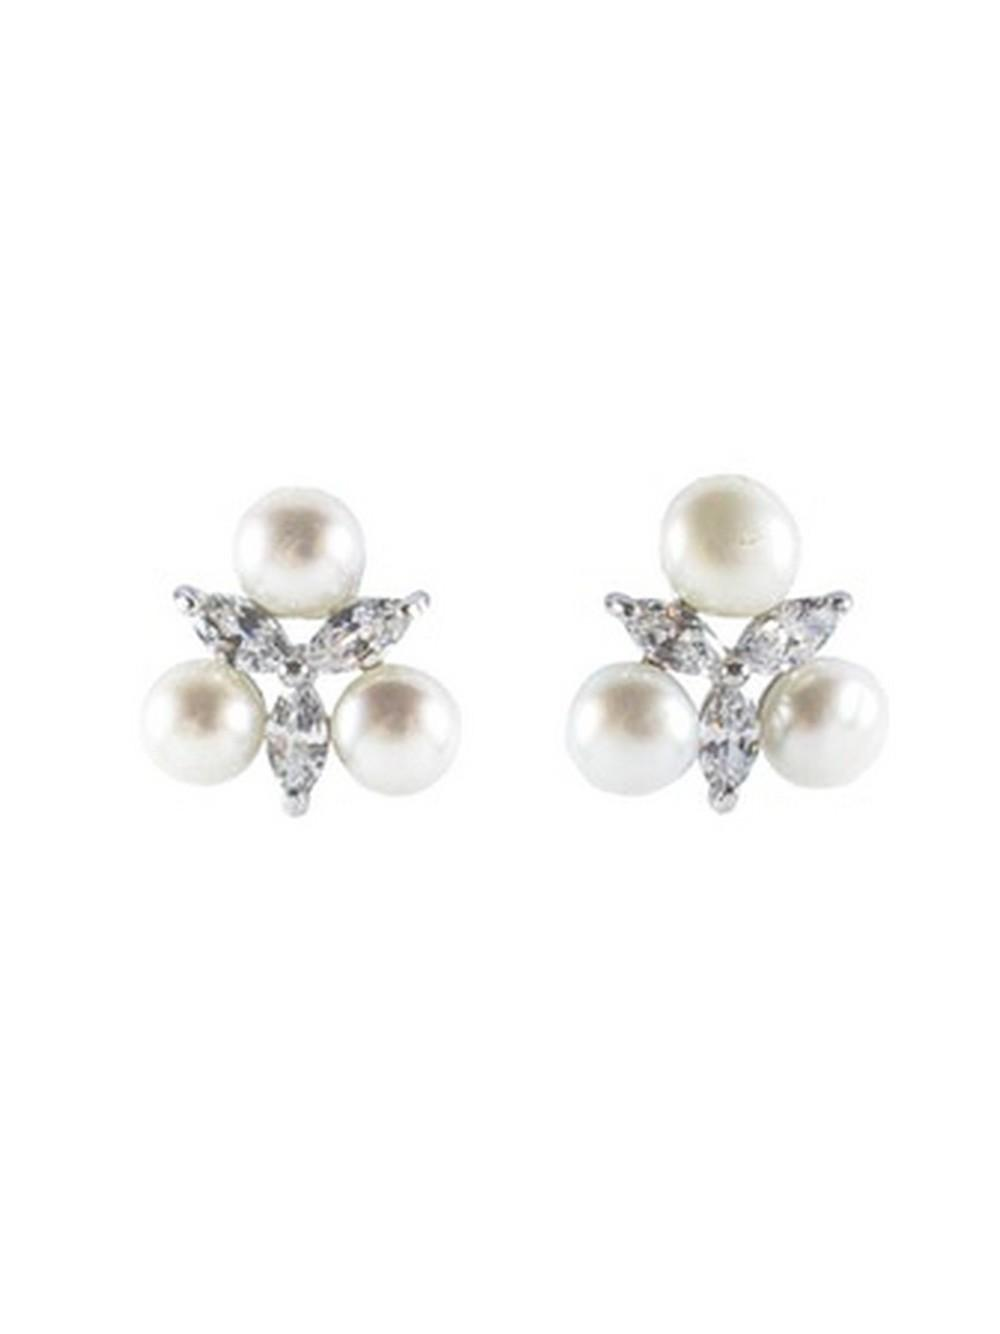 Monarch Starburst Pearl Earrings Item # FE11727-S20